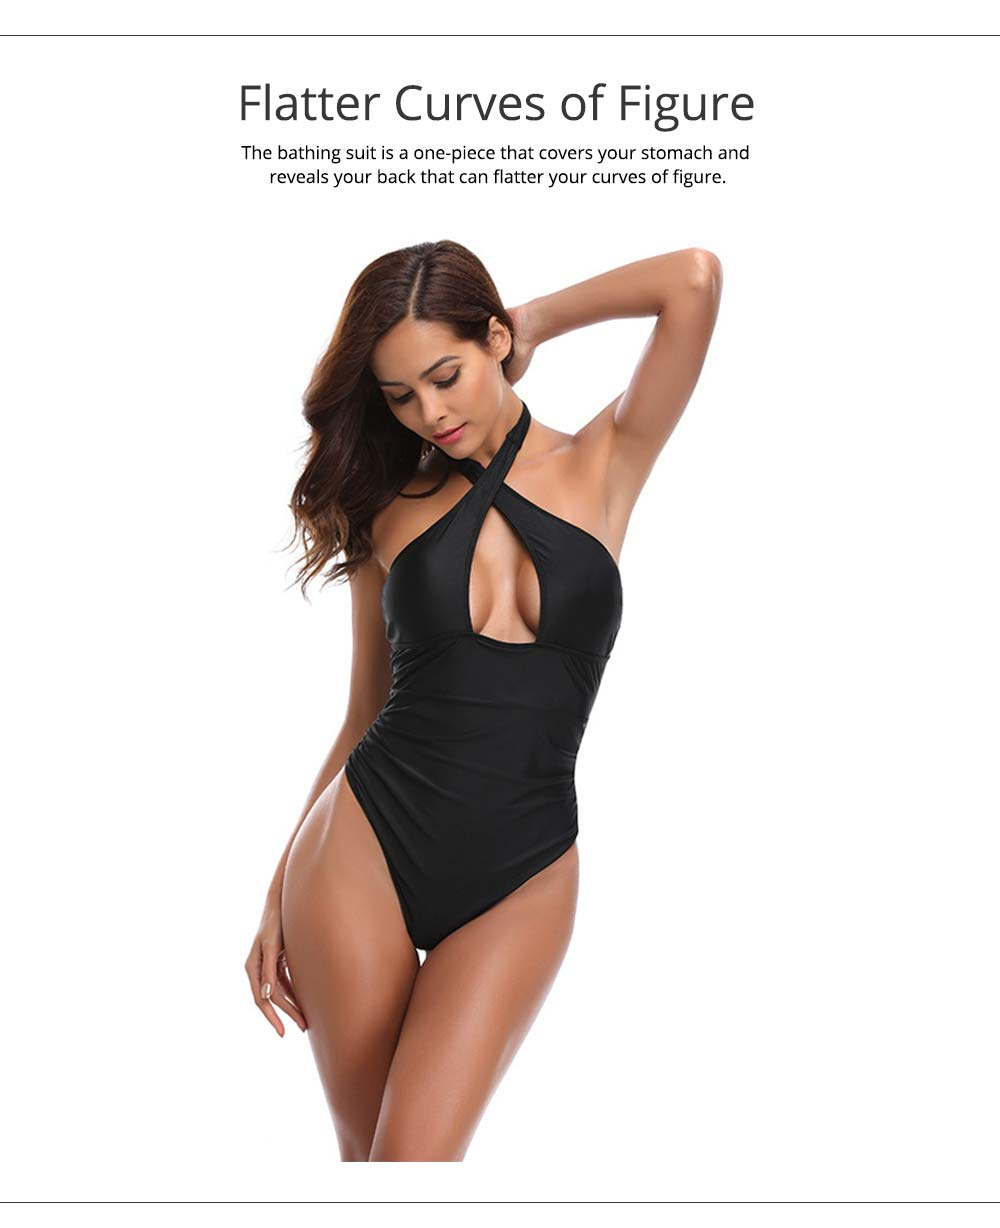 Polyester Spandex Swimsuit Cross Neck Black Bikini Cover Stomach Design for Women Sexy Bathing Suit One-piece Swimwear for Summer 2